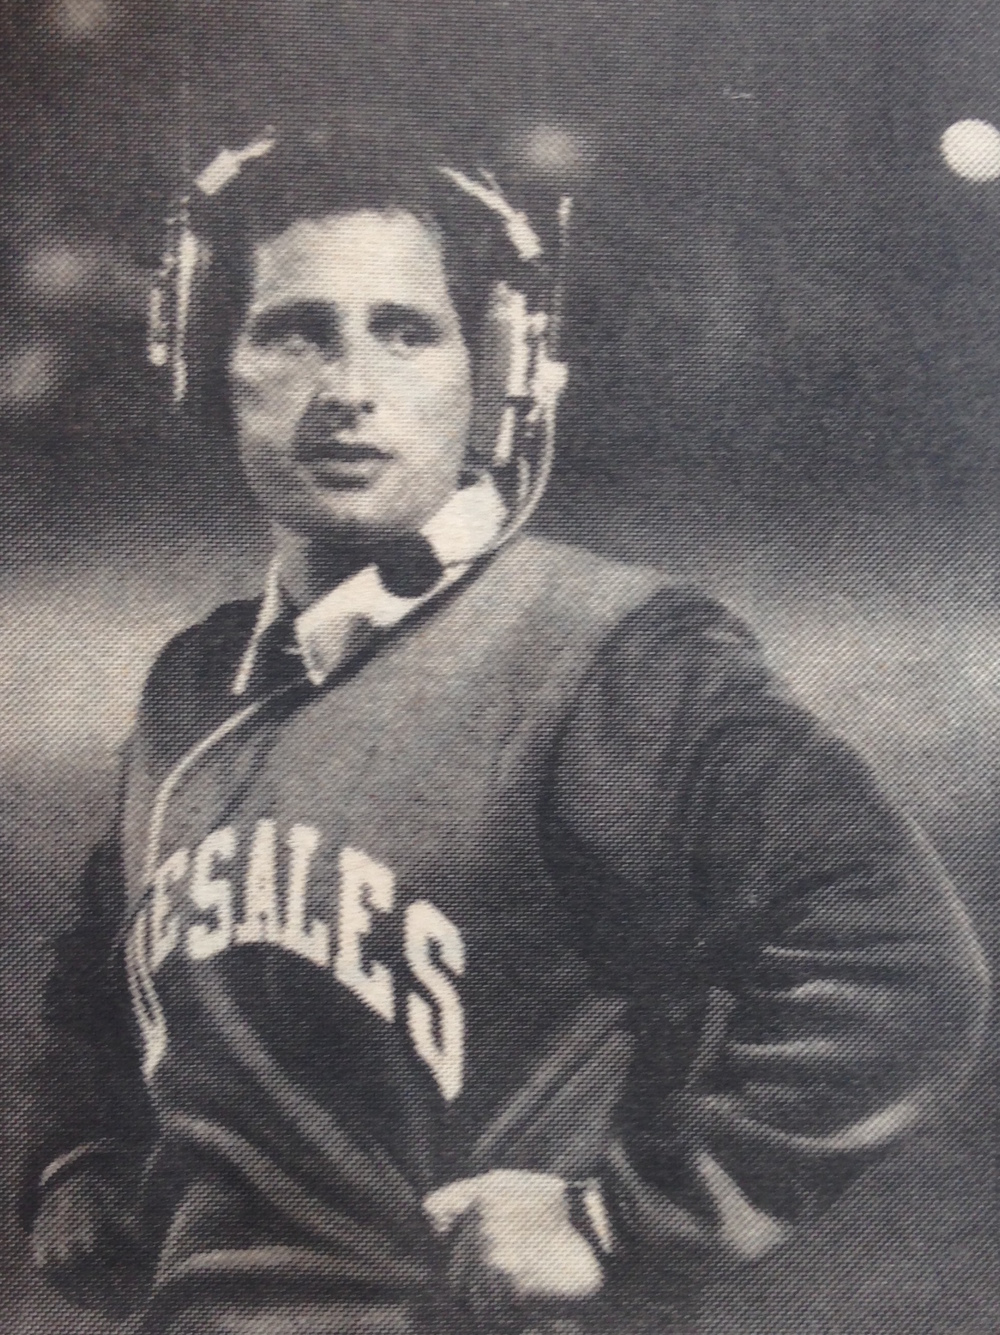 The 1985 State Championship was the last game coached at DeSales by Tony Pusateri '69, who finished his tenure at his alma mater with a record of 69-23-2